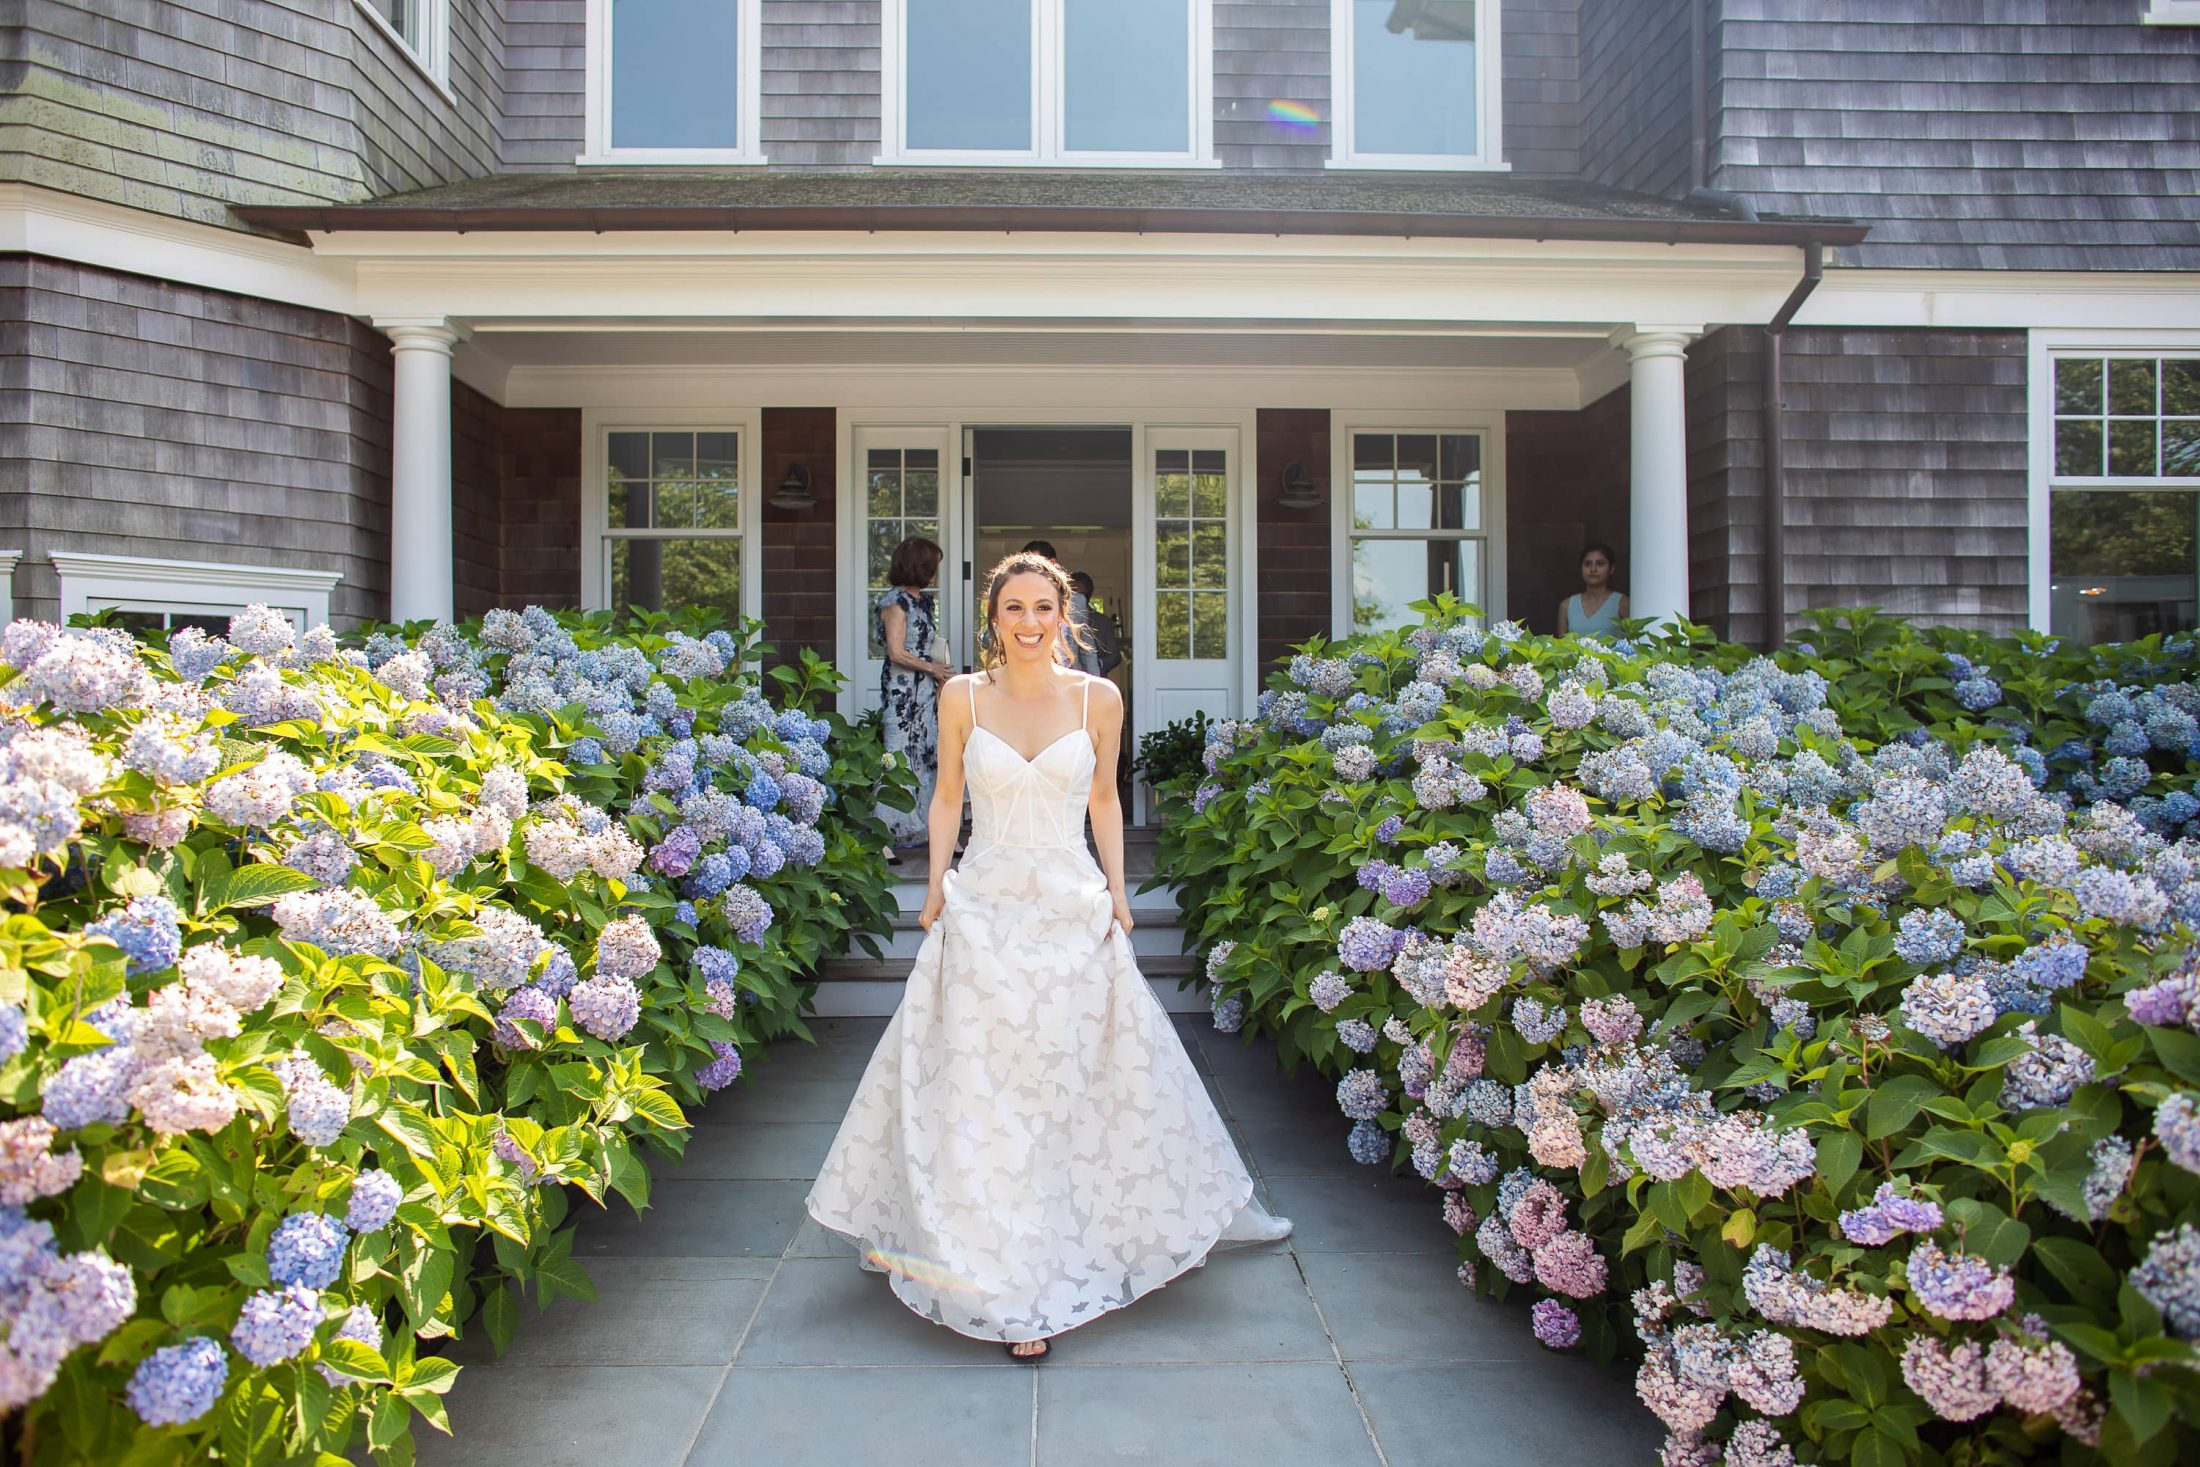 Bride surrounded by hydrangeas at this Hamptons wedding weekend held at The Parrish Museum | Photo by Roey Yohai Studio